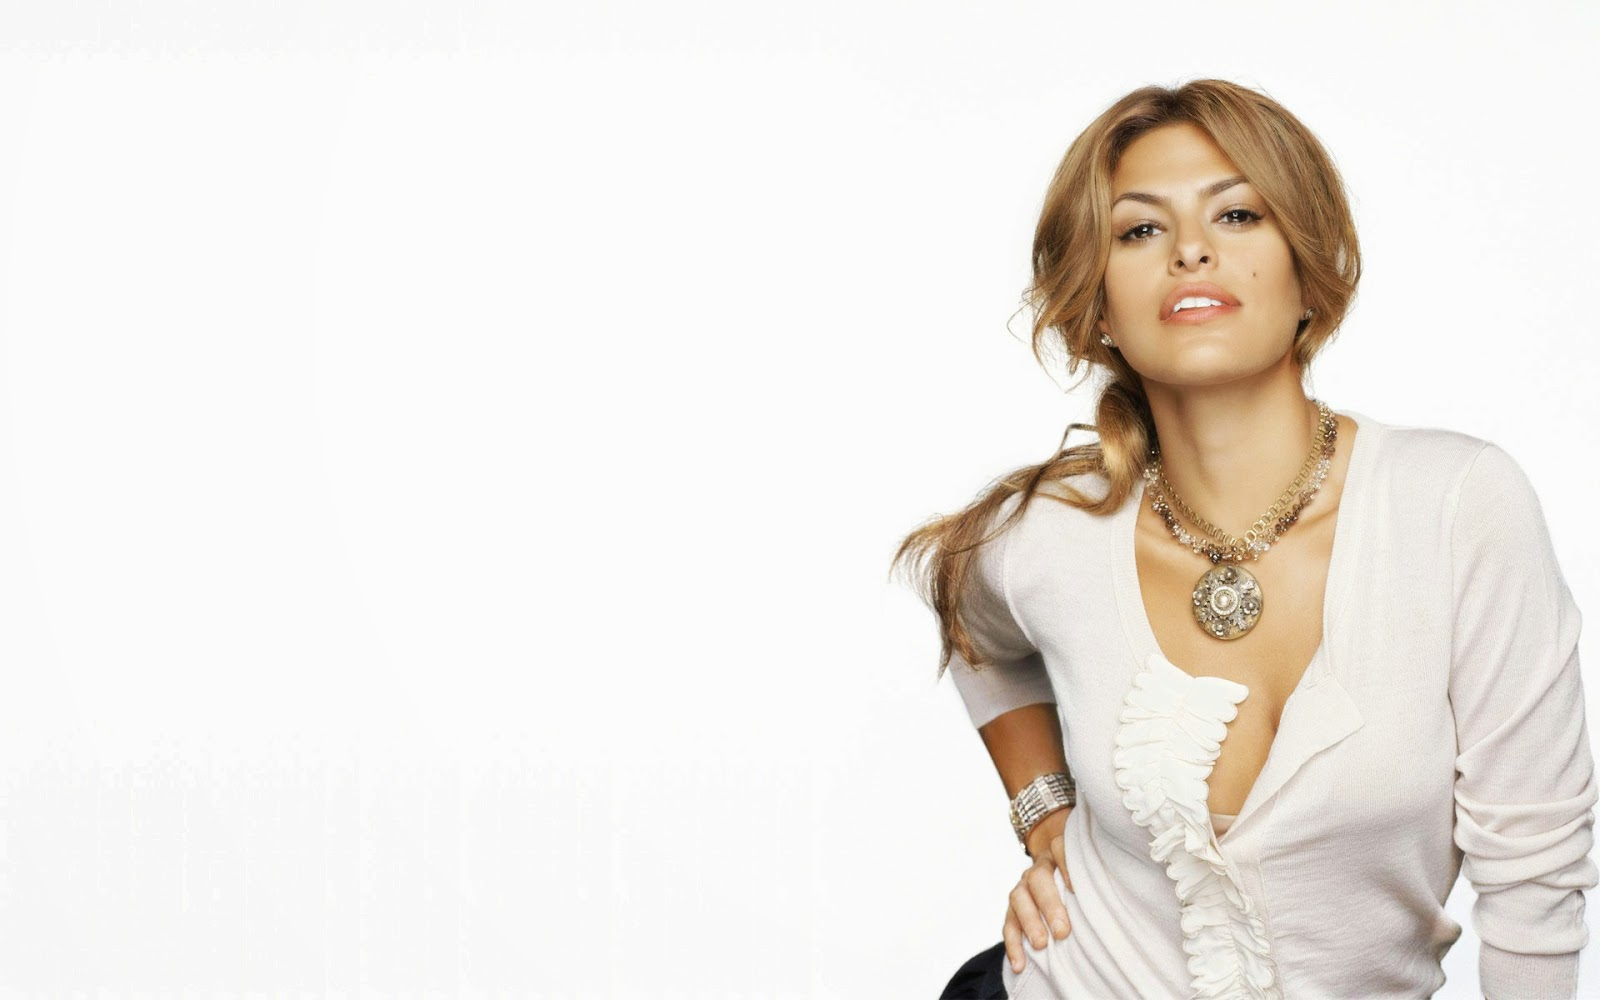 Eva mendes hot pose best desktop latest wallpaper